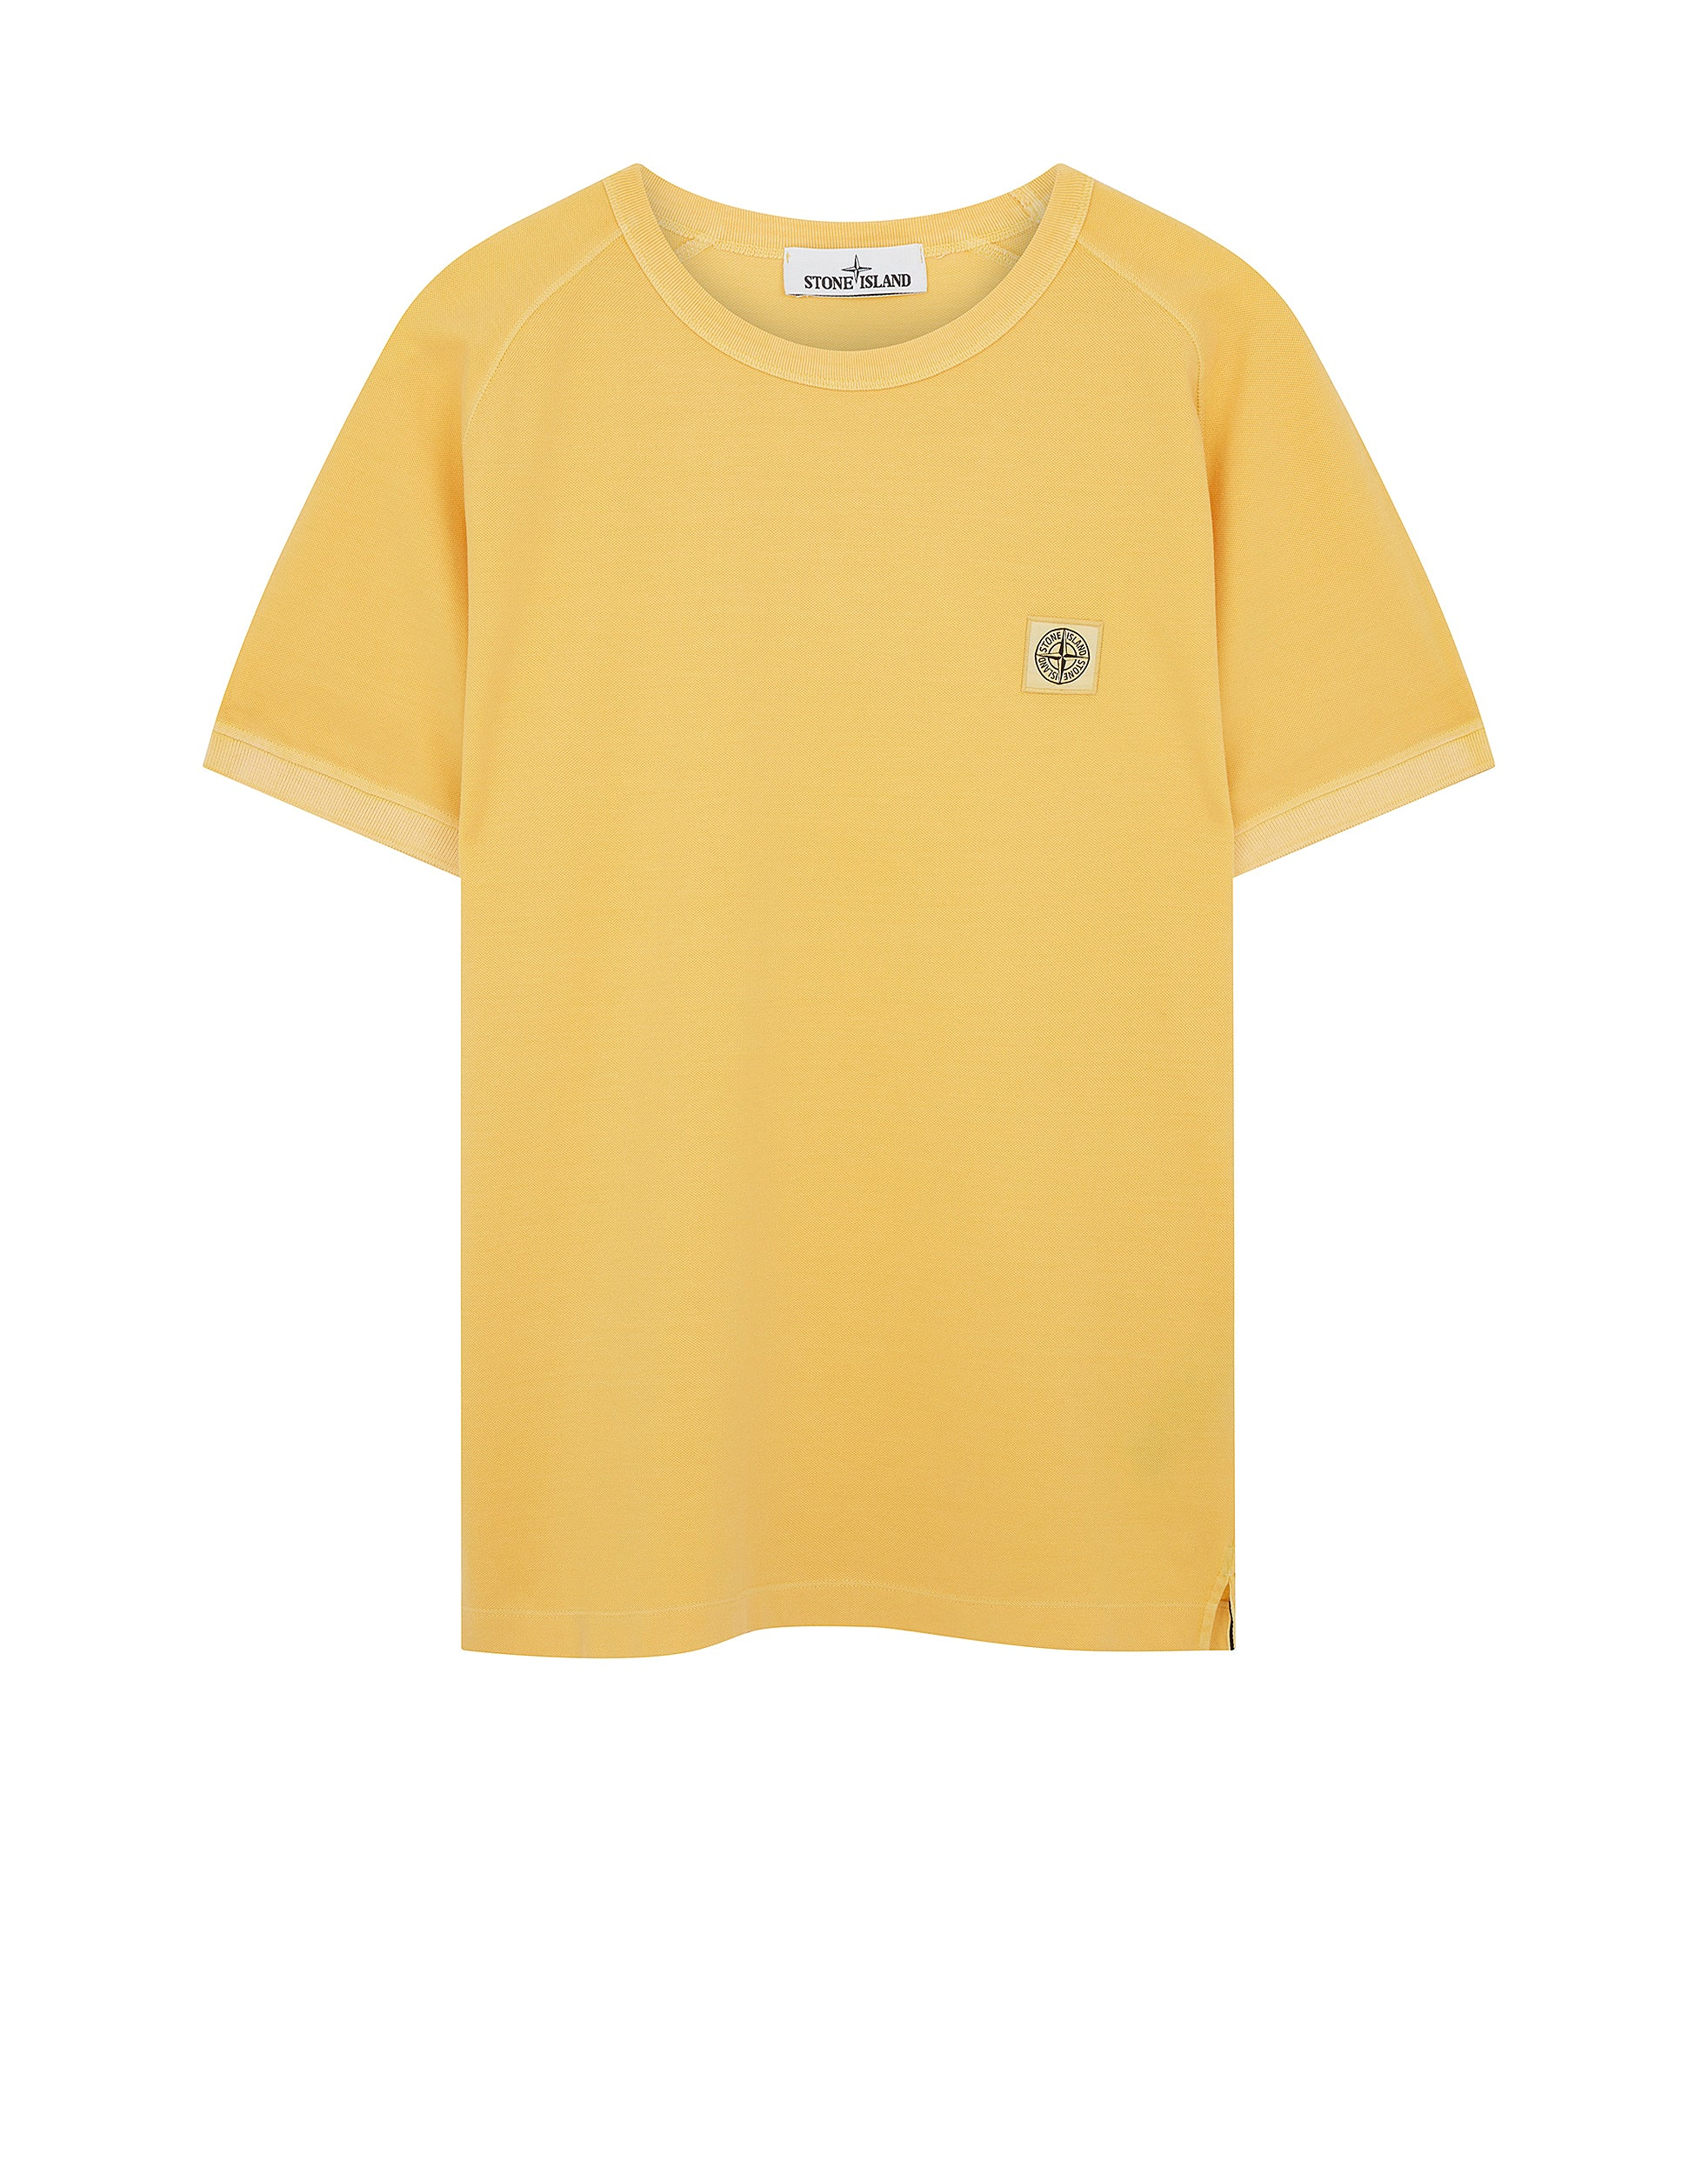 23167 PIGMENT DYE T-Shirt in Yellow